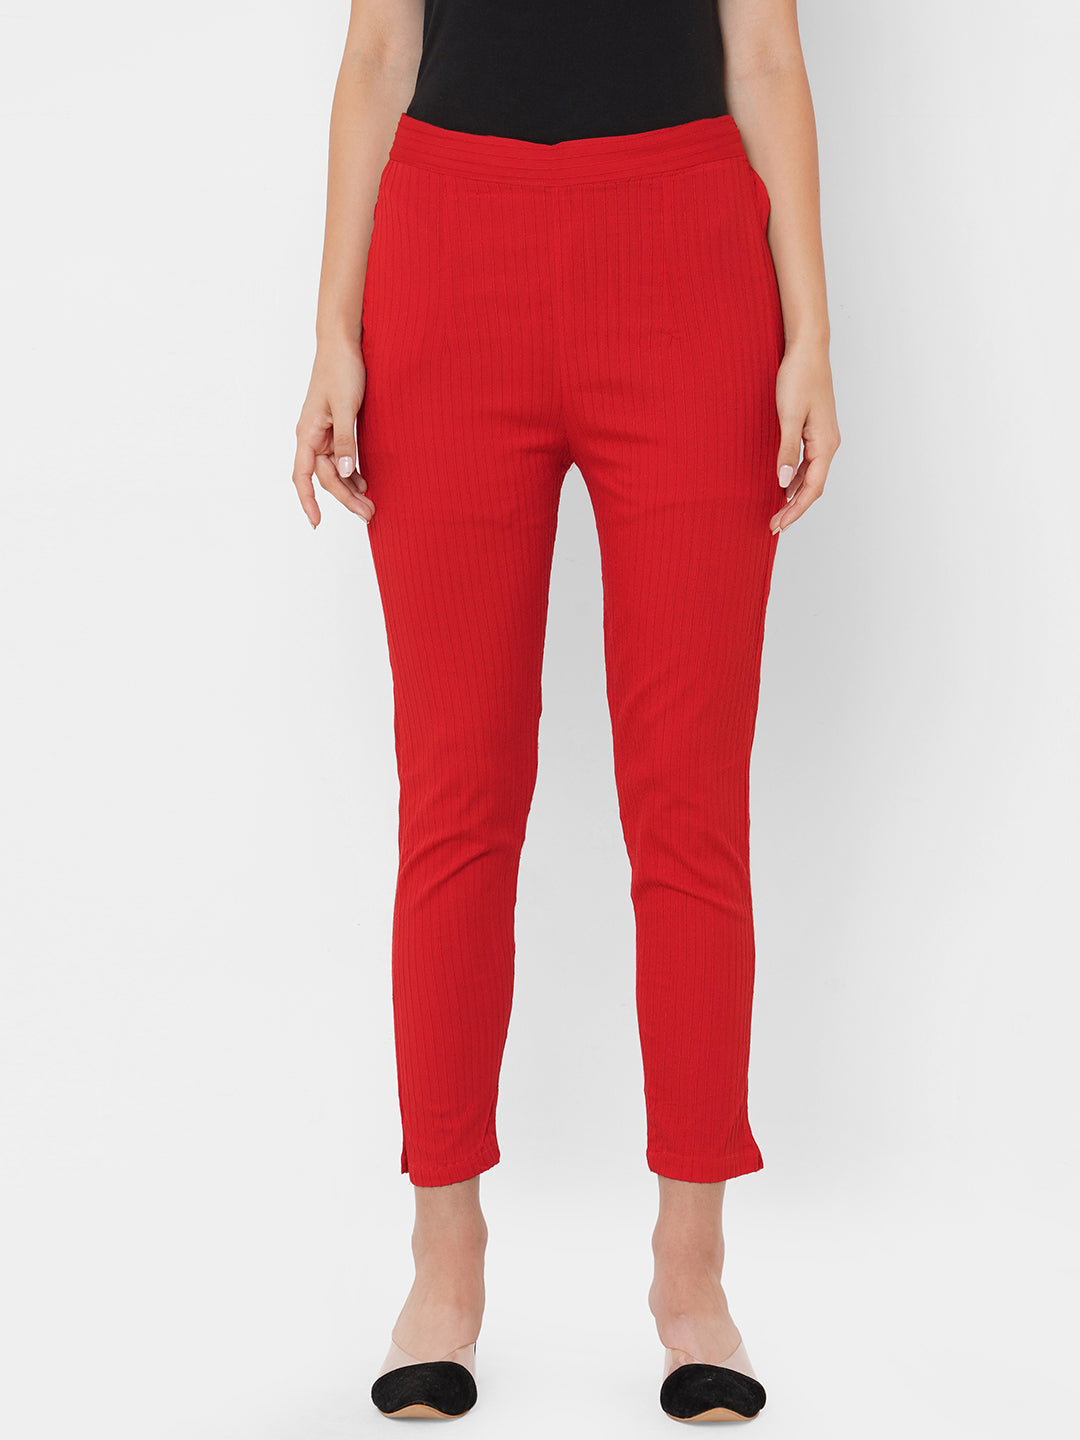 Woven Striped Solid Lycra Pant - Red